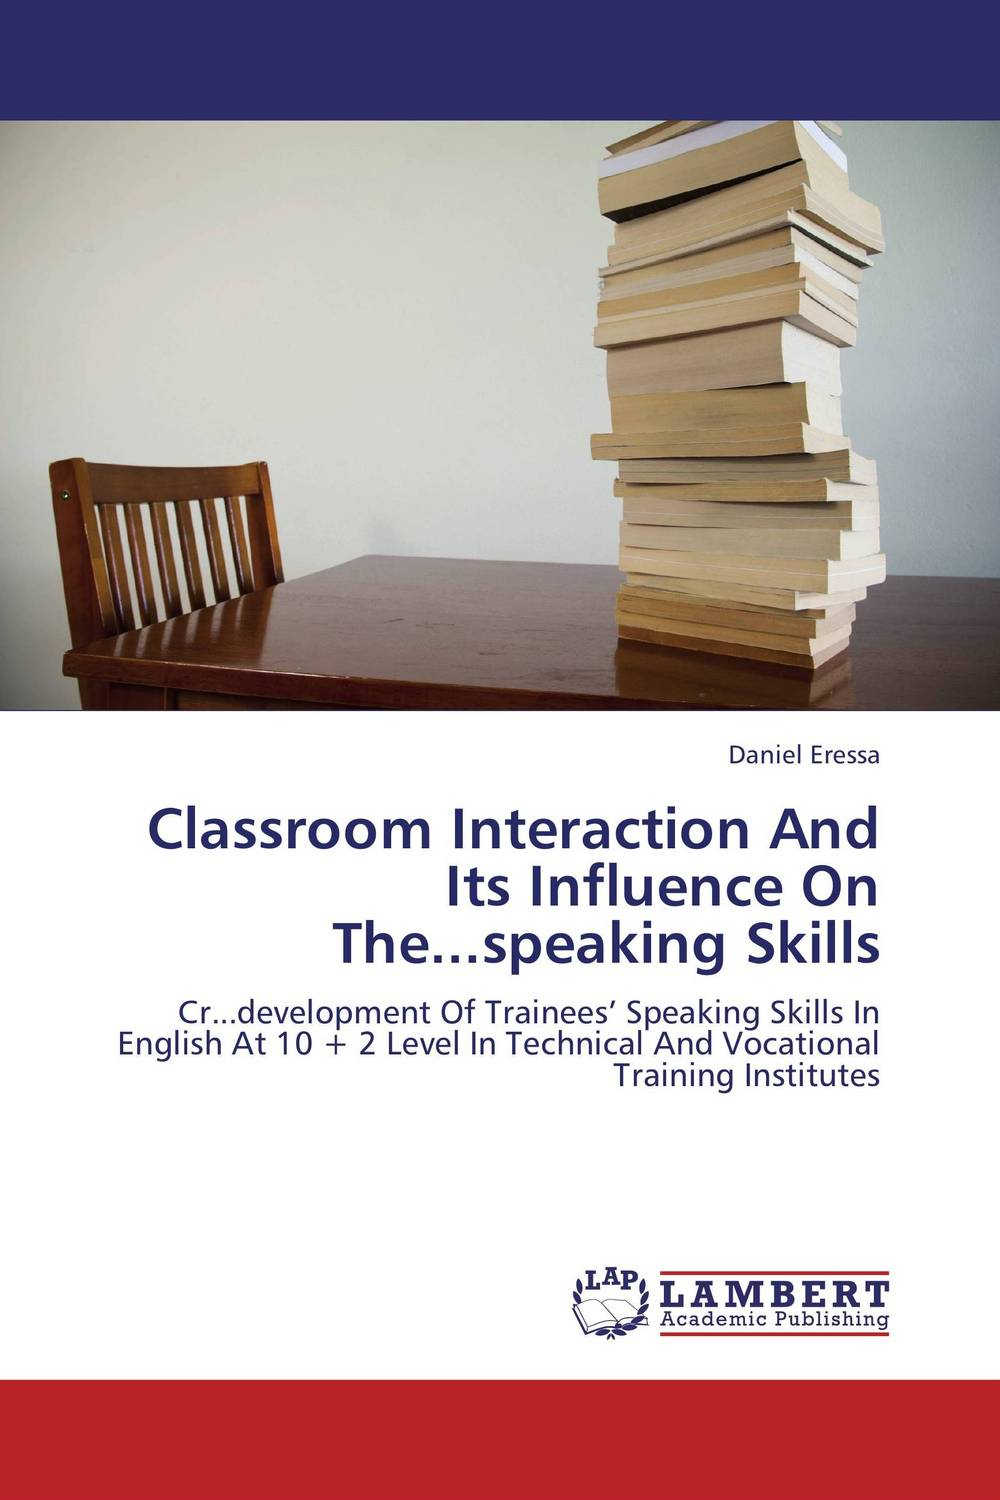 Classroom Interaction And Its Influence On The...speaking Skills